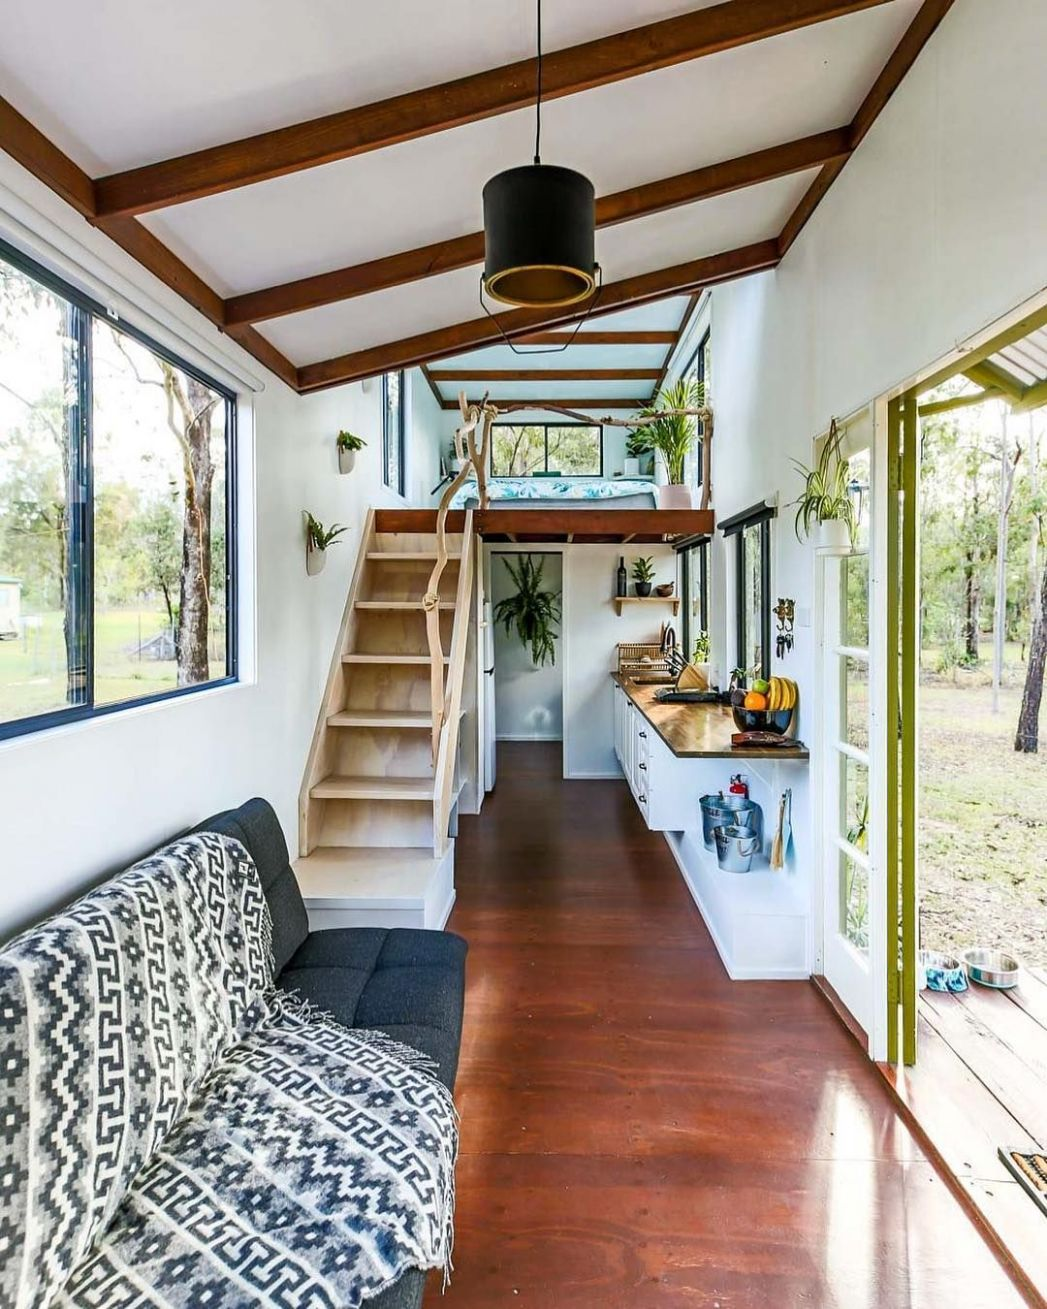 New video live today of this stunning eco tiny house in Australia ...